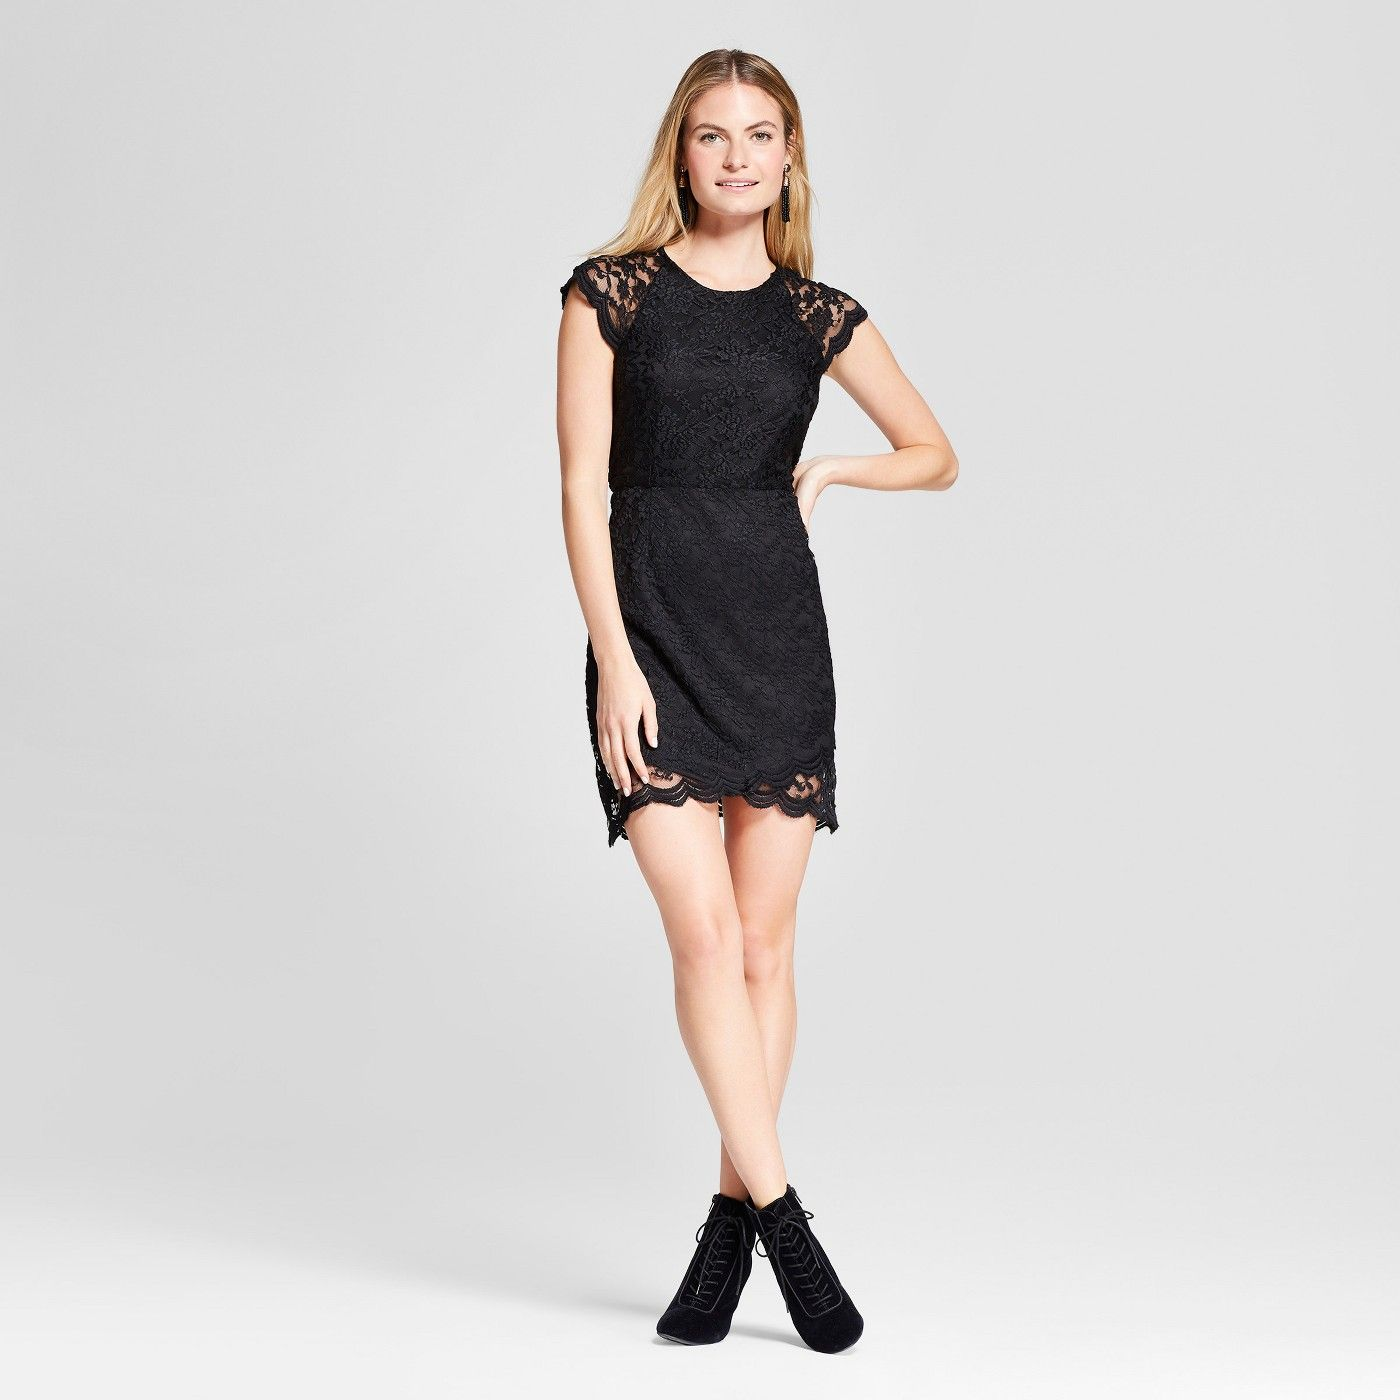 Gothic Fashion At Target Yes You Can Shop Goth At Target Capped Sleeve Dress Dresses Fashion [ 1400 x 1400 Pixel ]